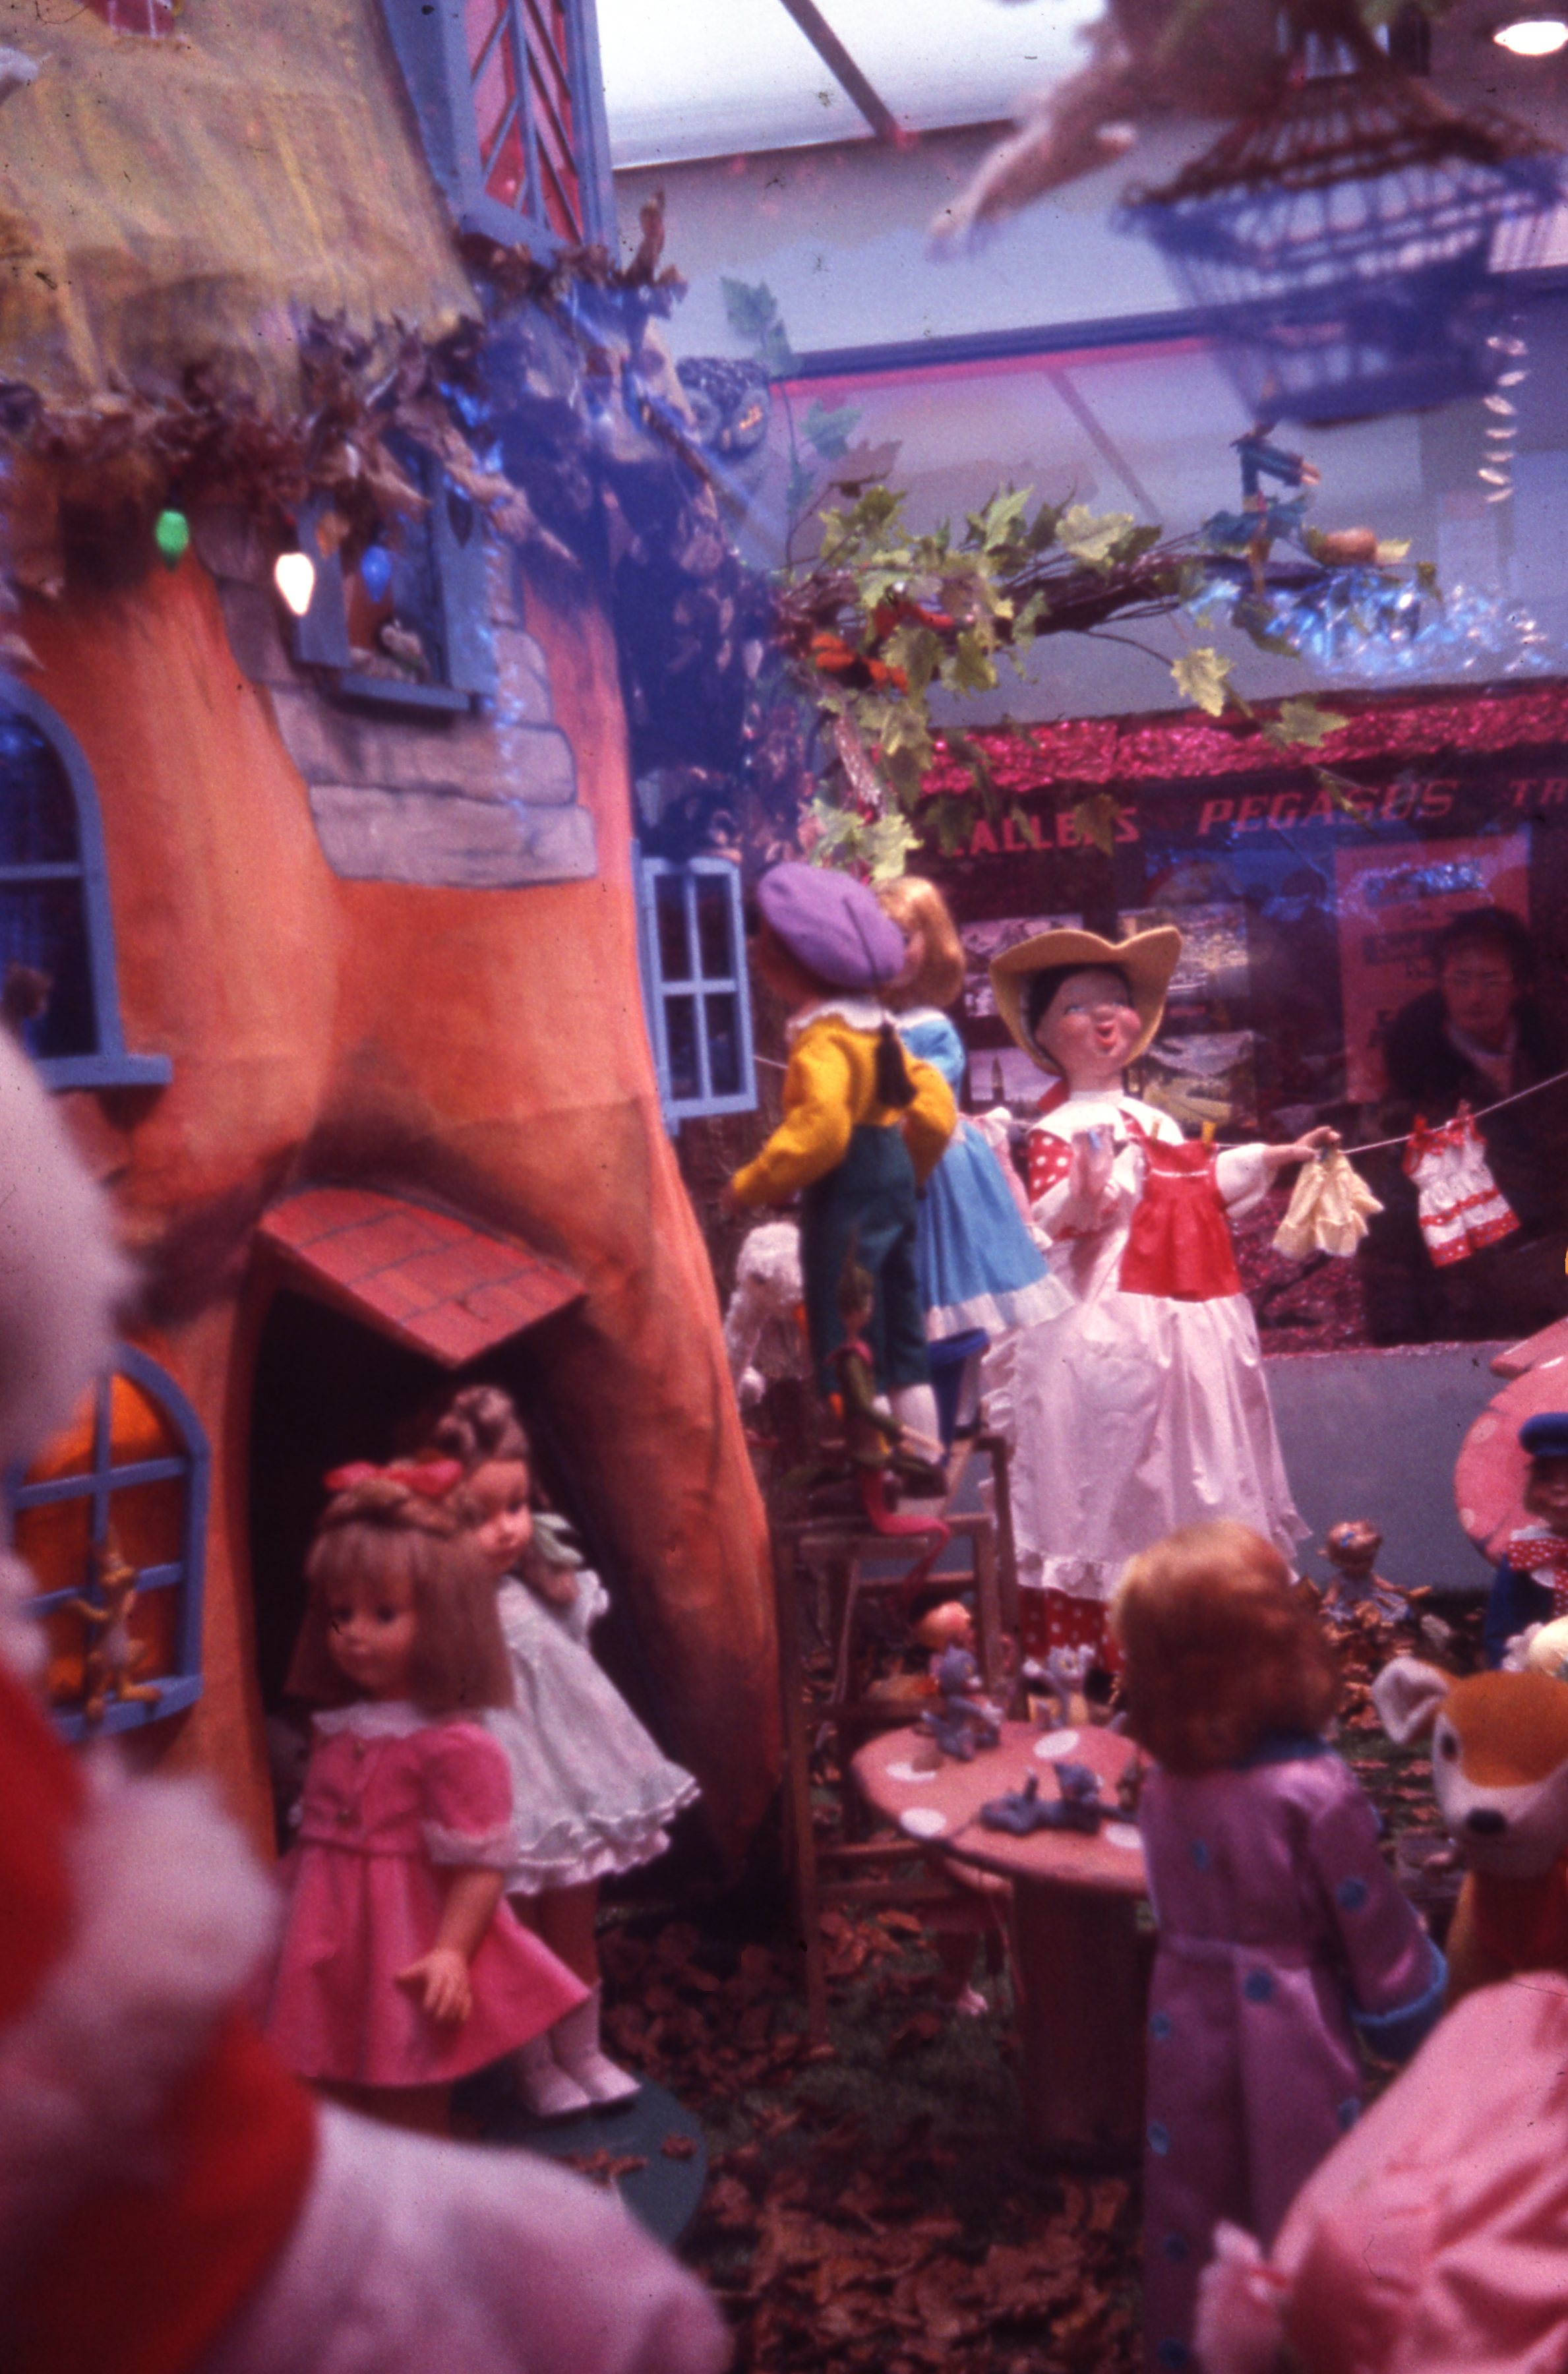 Featuring 'The old woman who lived in a shoe.' this is a festive display for children at Callers department store in Newcastle upon Tyne. This is a 35mm slide. It was taken in 1965.